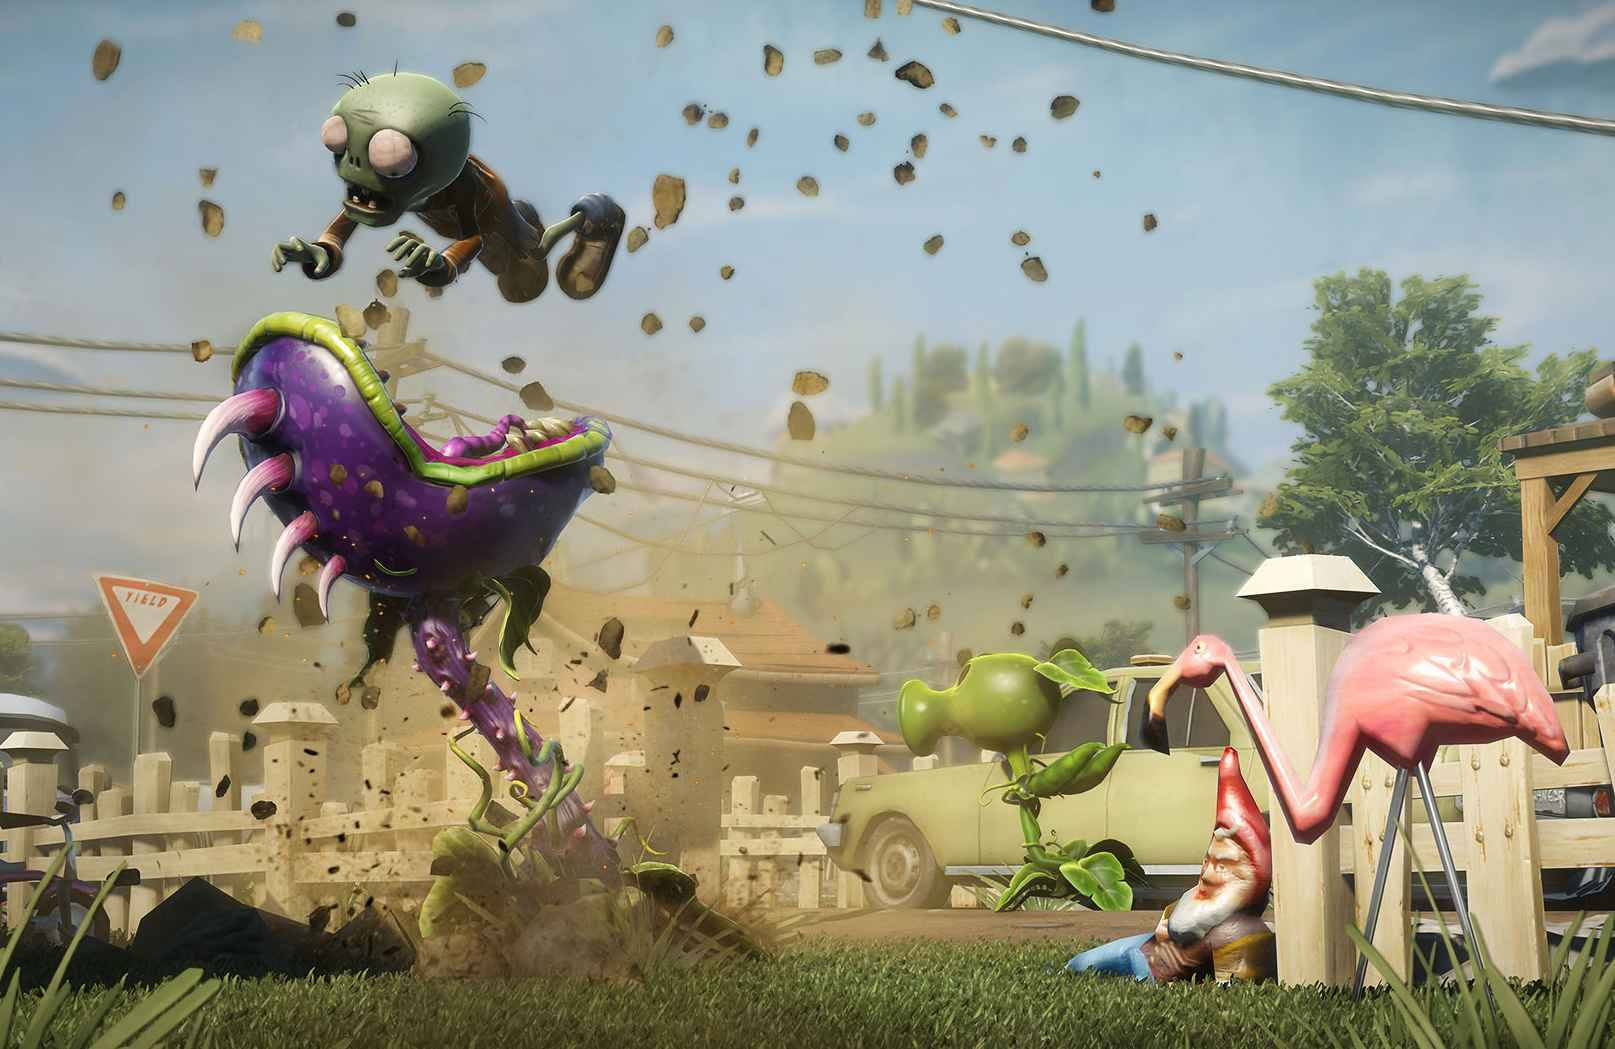 Plants vs zombies garden warfare un sympathique for Plante vs zombie garden warfare 2